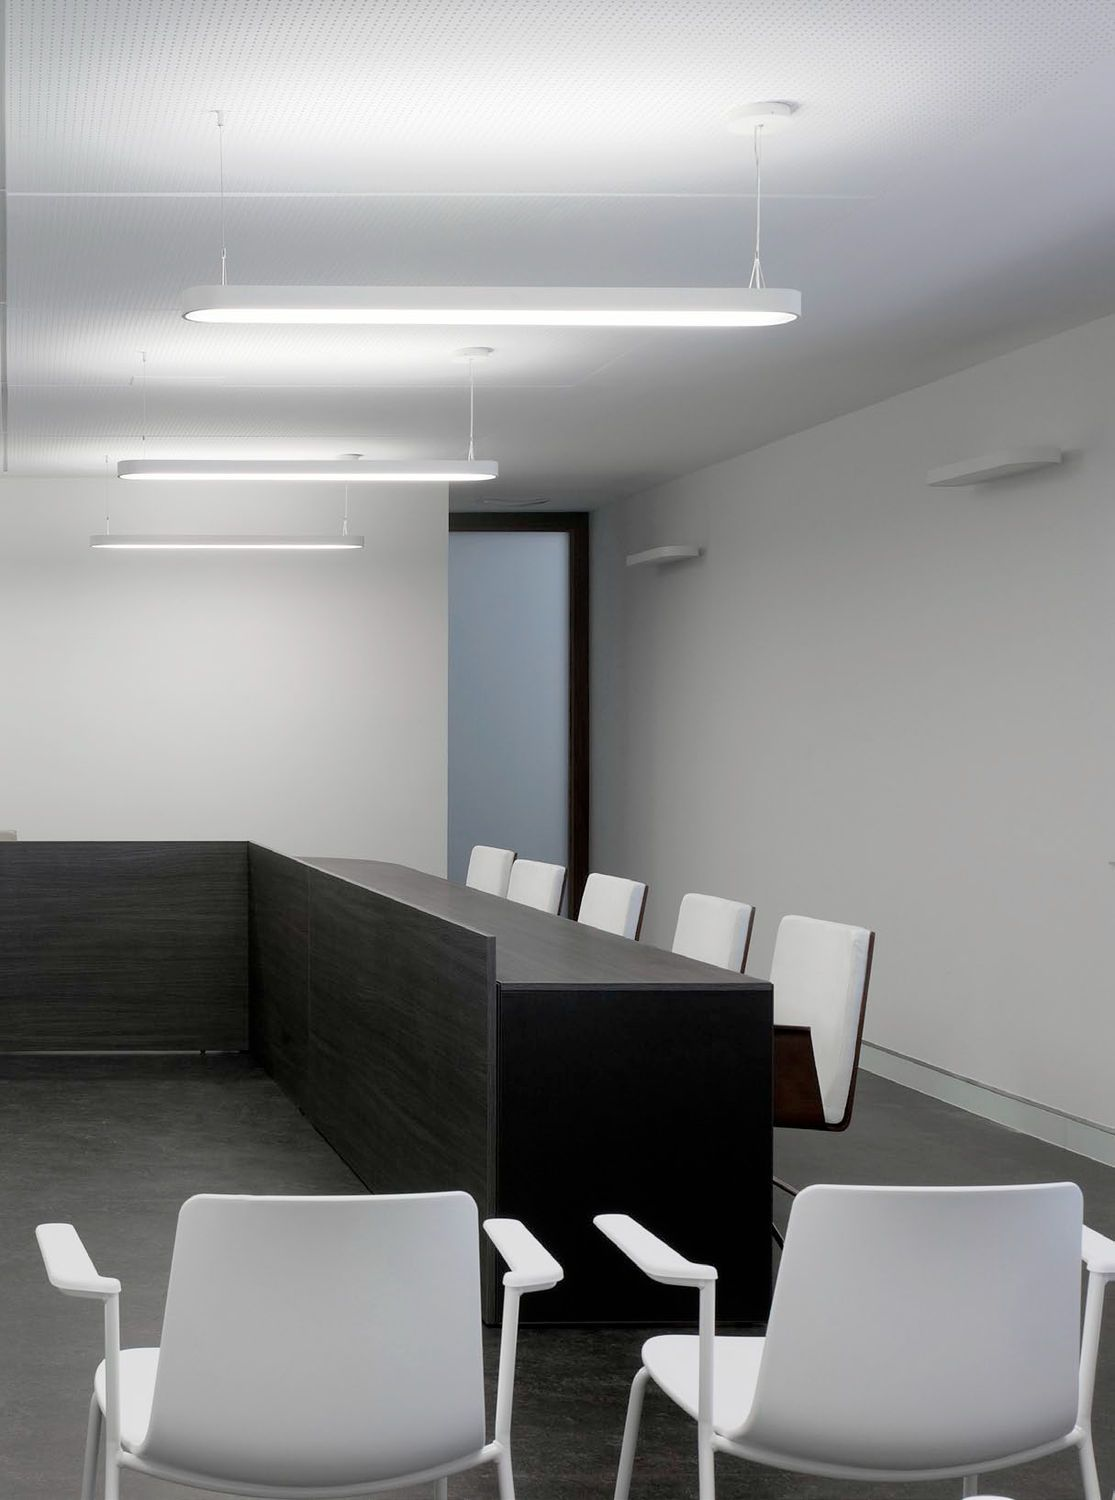 Conference Room Lighting Design: Linear-suspended-fluorescent-light-fixtures-offices